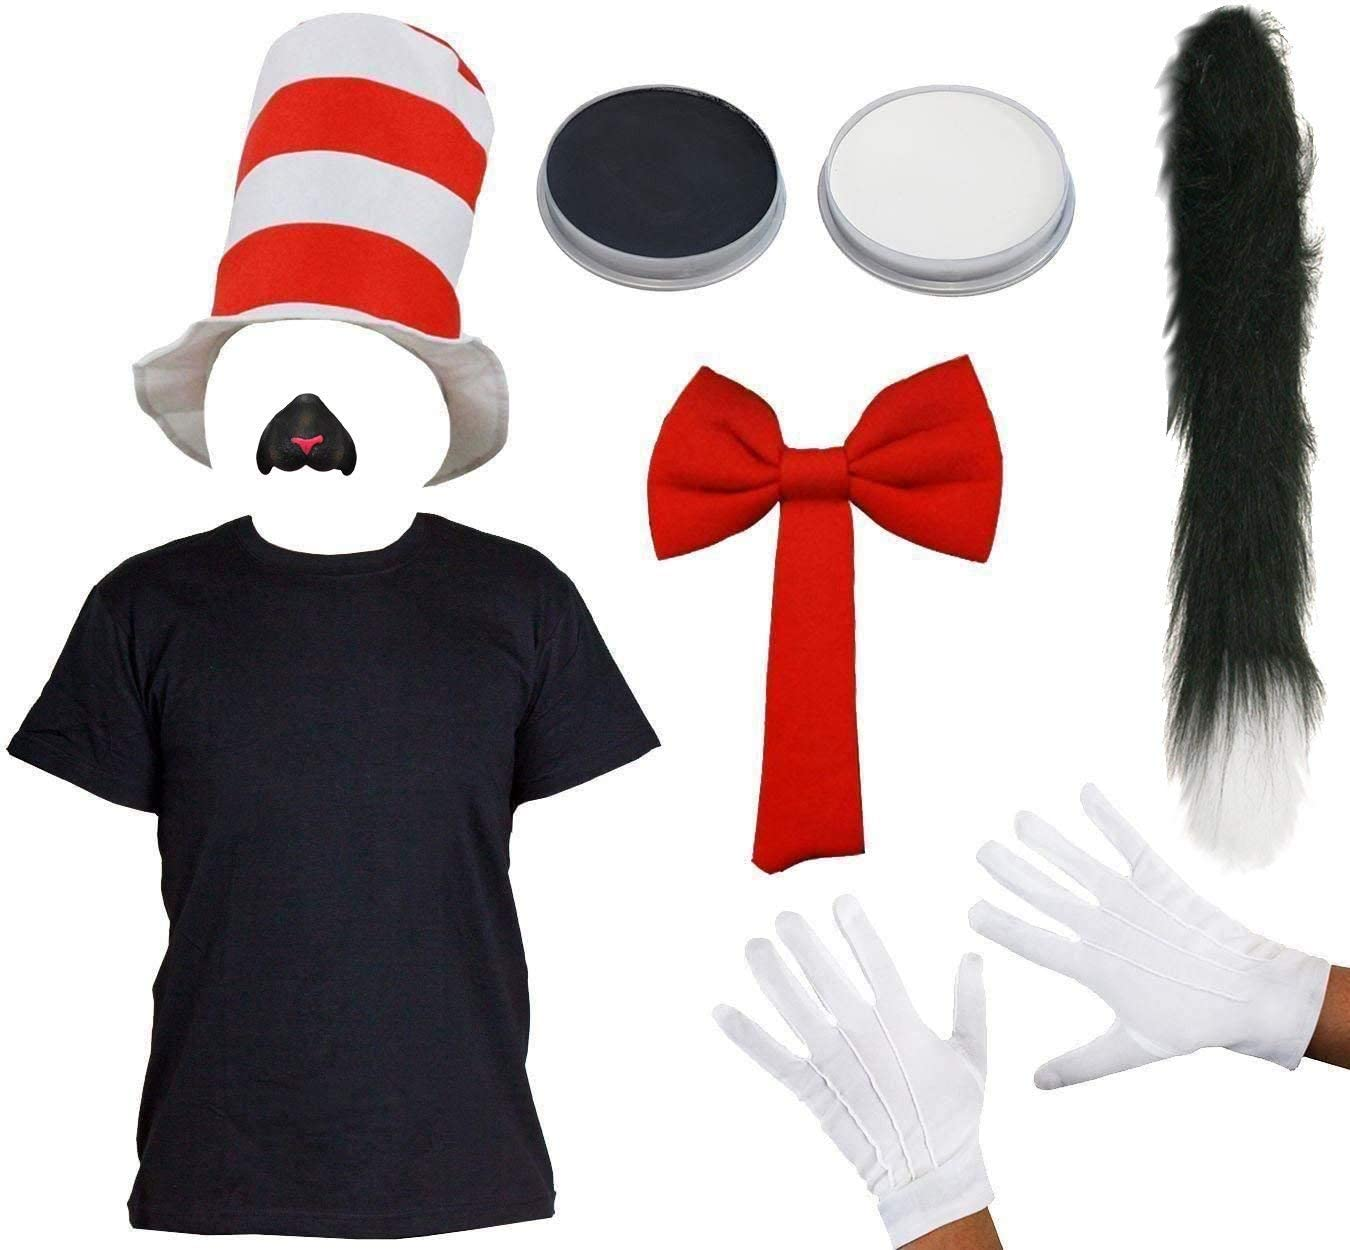 THIN BLACK CAT TAIL ADULTS CRAZY CAT FANCY DRESS COSTUME SET WITH FACEPAINT RED BOW TIE BLACK SHIRT CAT NOSE SMALL GLOVES BOOK WEEK COSTUME WITH STRIPED RED HAT